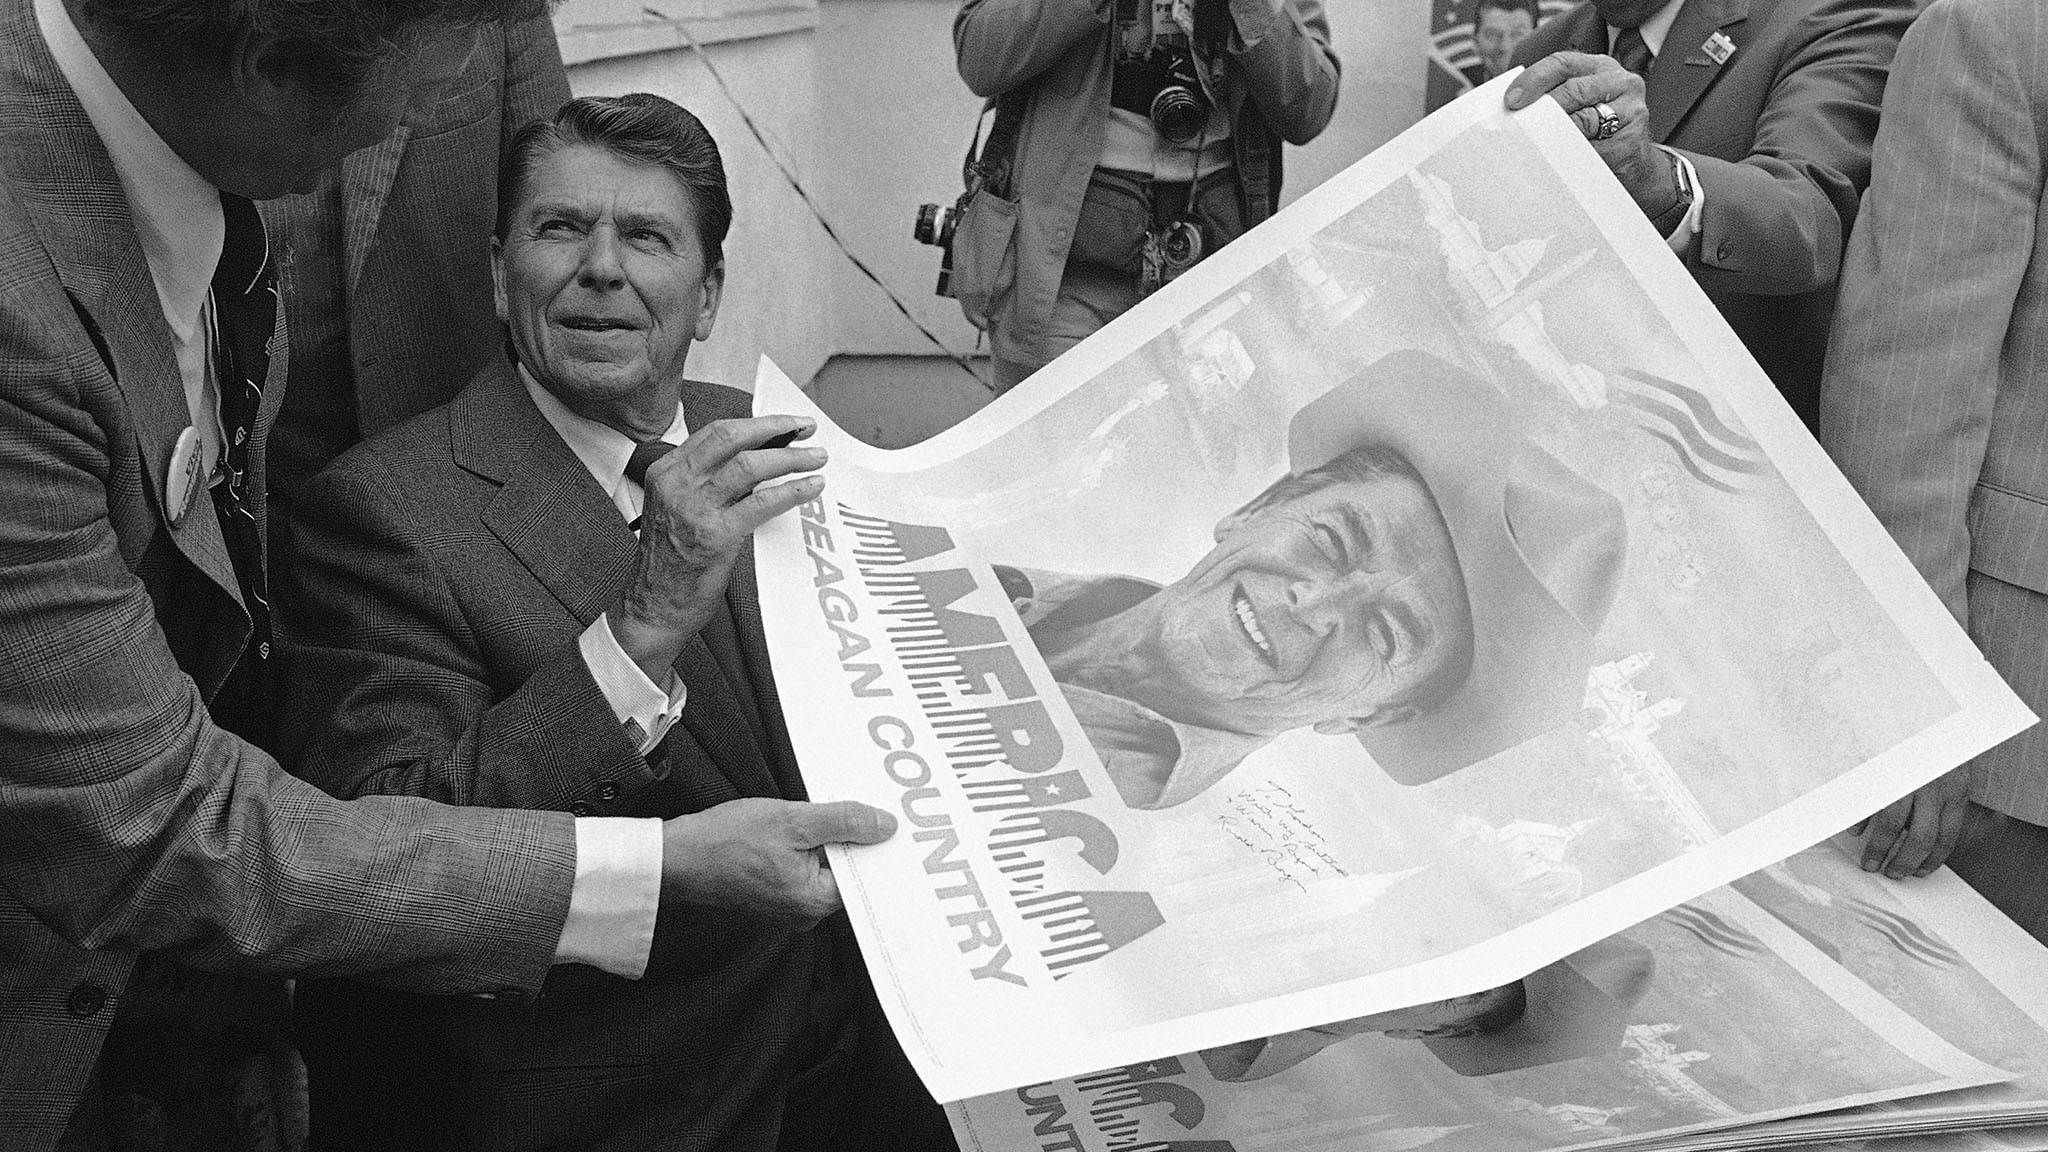 Republican Presidential candidate Ronald Reagan hands autographed campaign poster to unidentified supporter during stop in Pasadena, California, Tuesday, May 27, 1980. Reagan, a former California governor, is campaigning for his home state's on June 3 primary. (AP Photo/Zeboski)